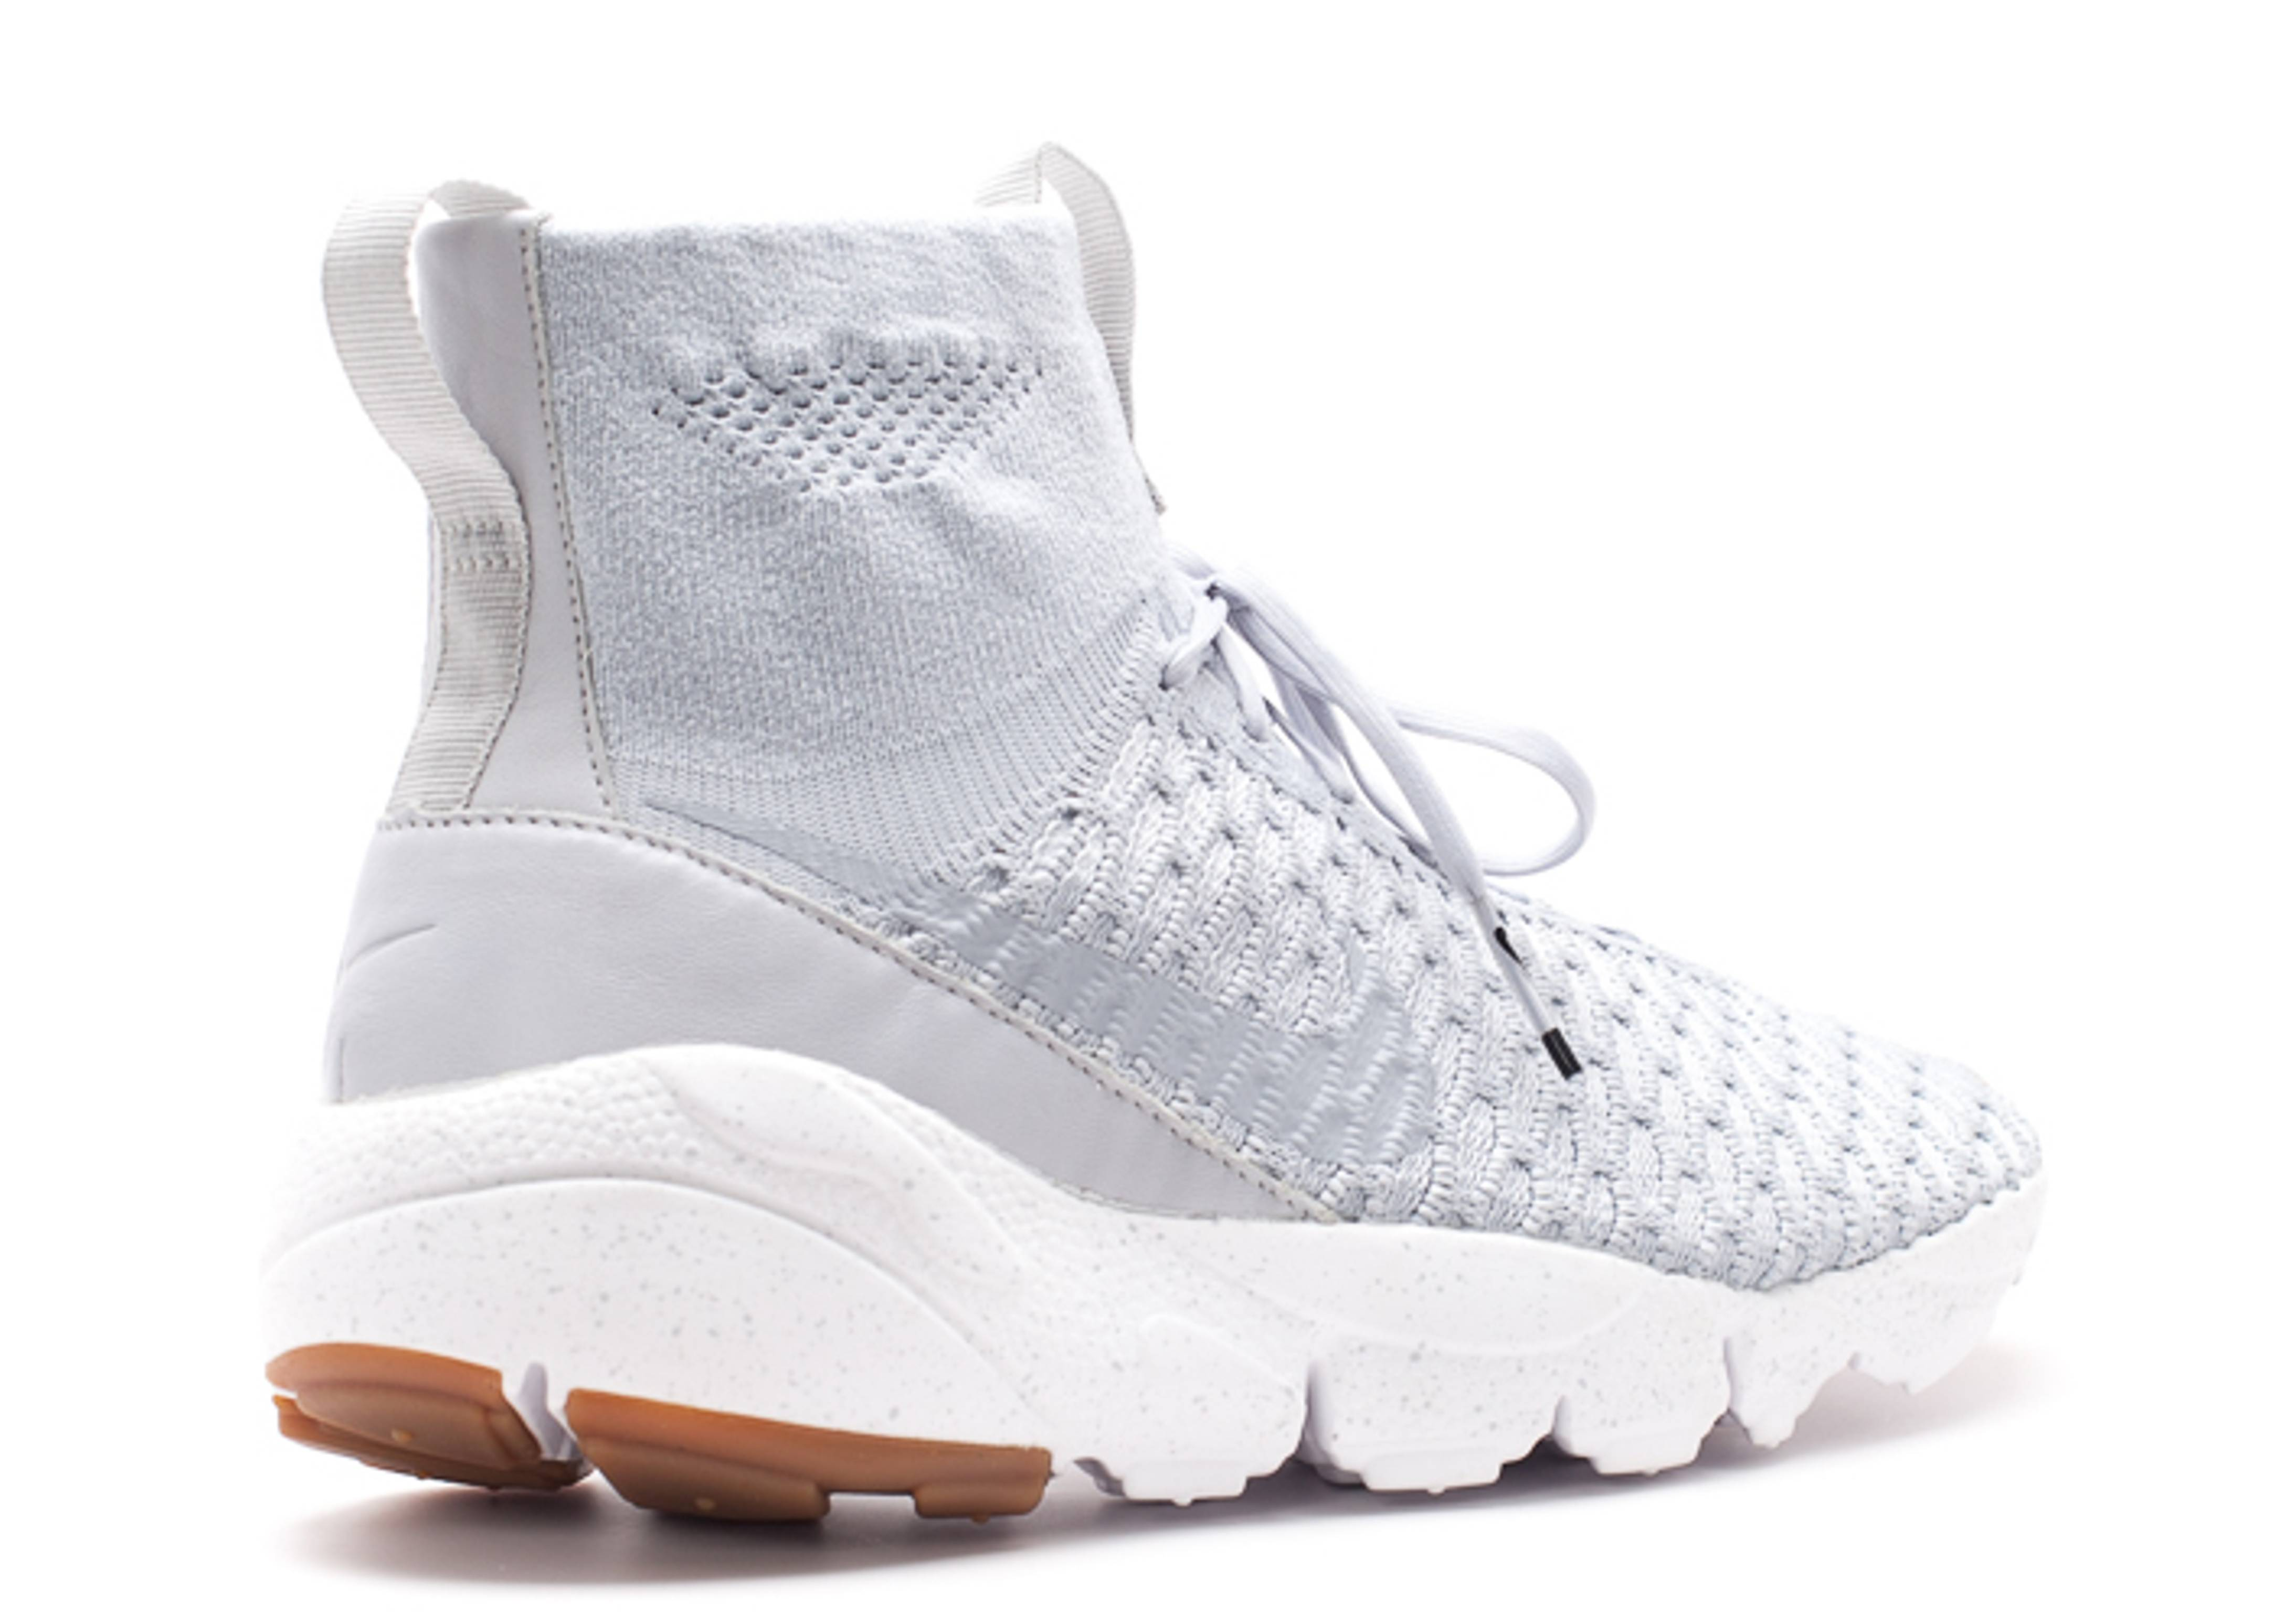 24101 7ea71 Chaussures nike air footscape sp 652960